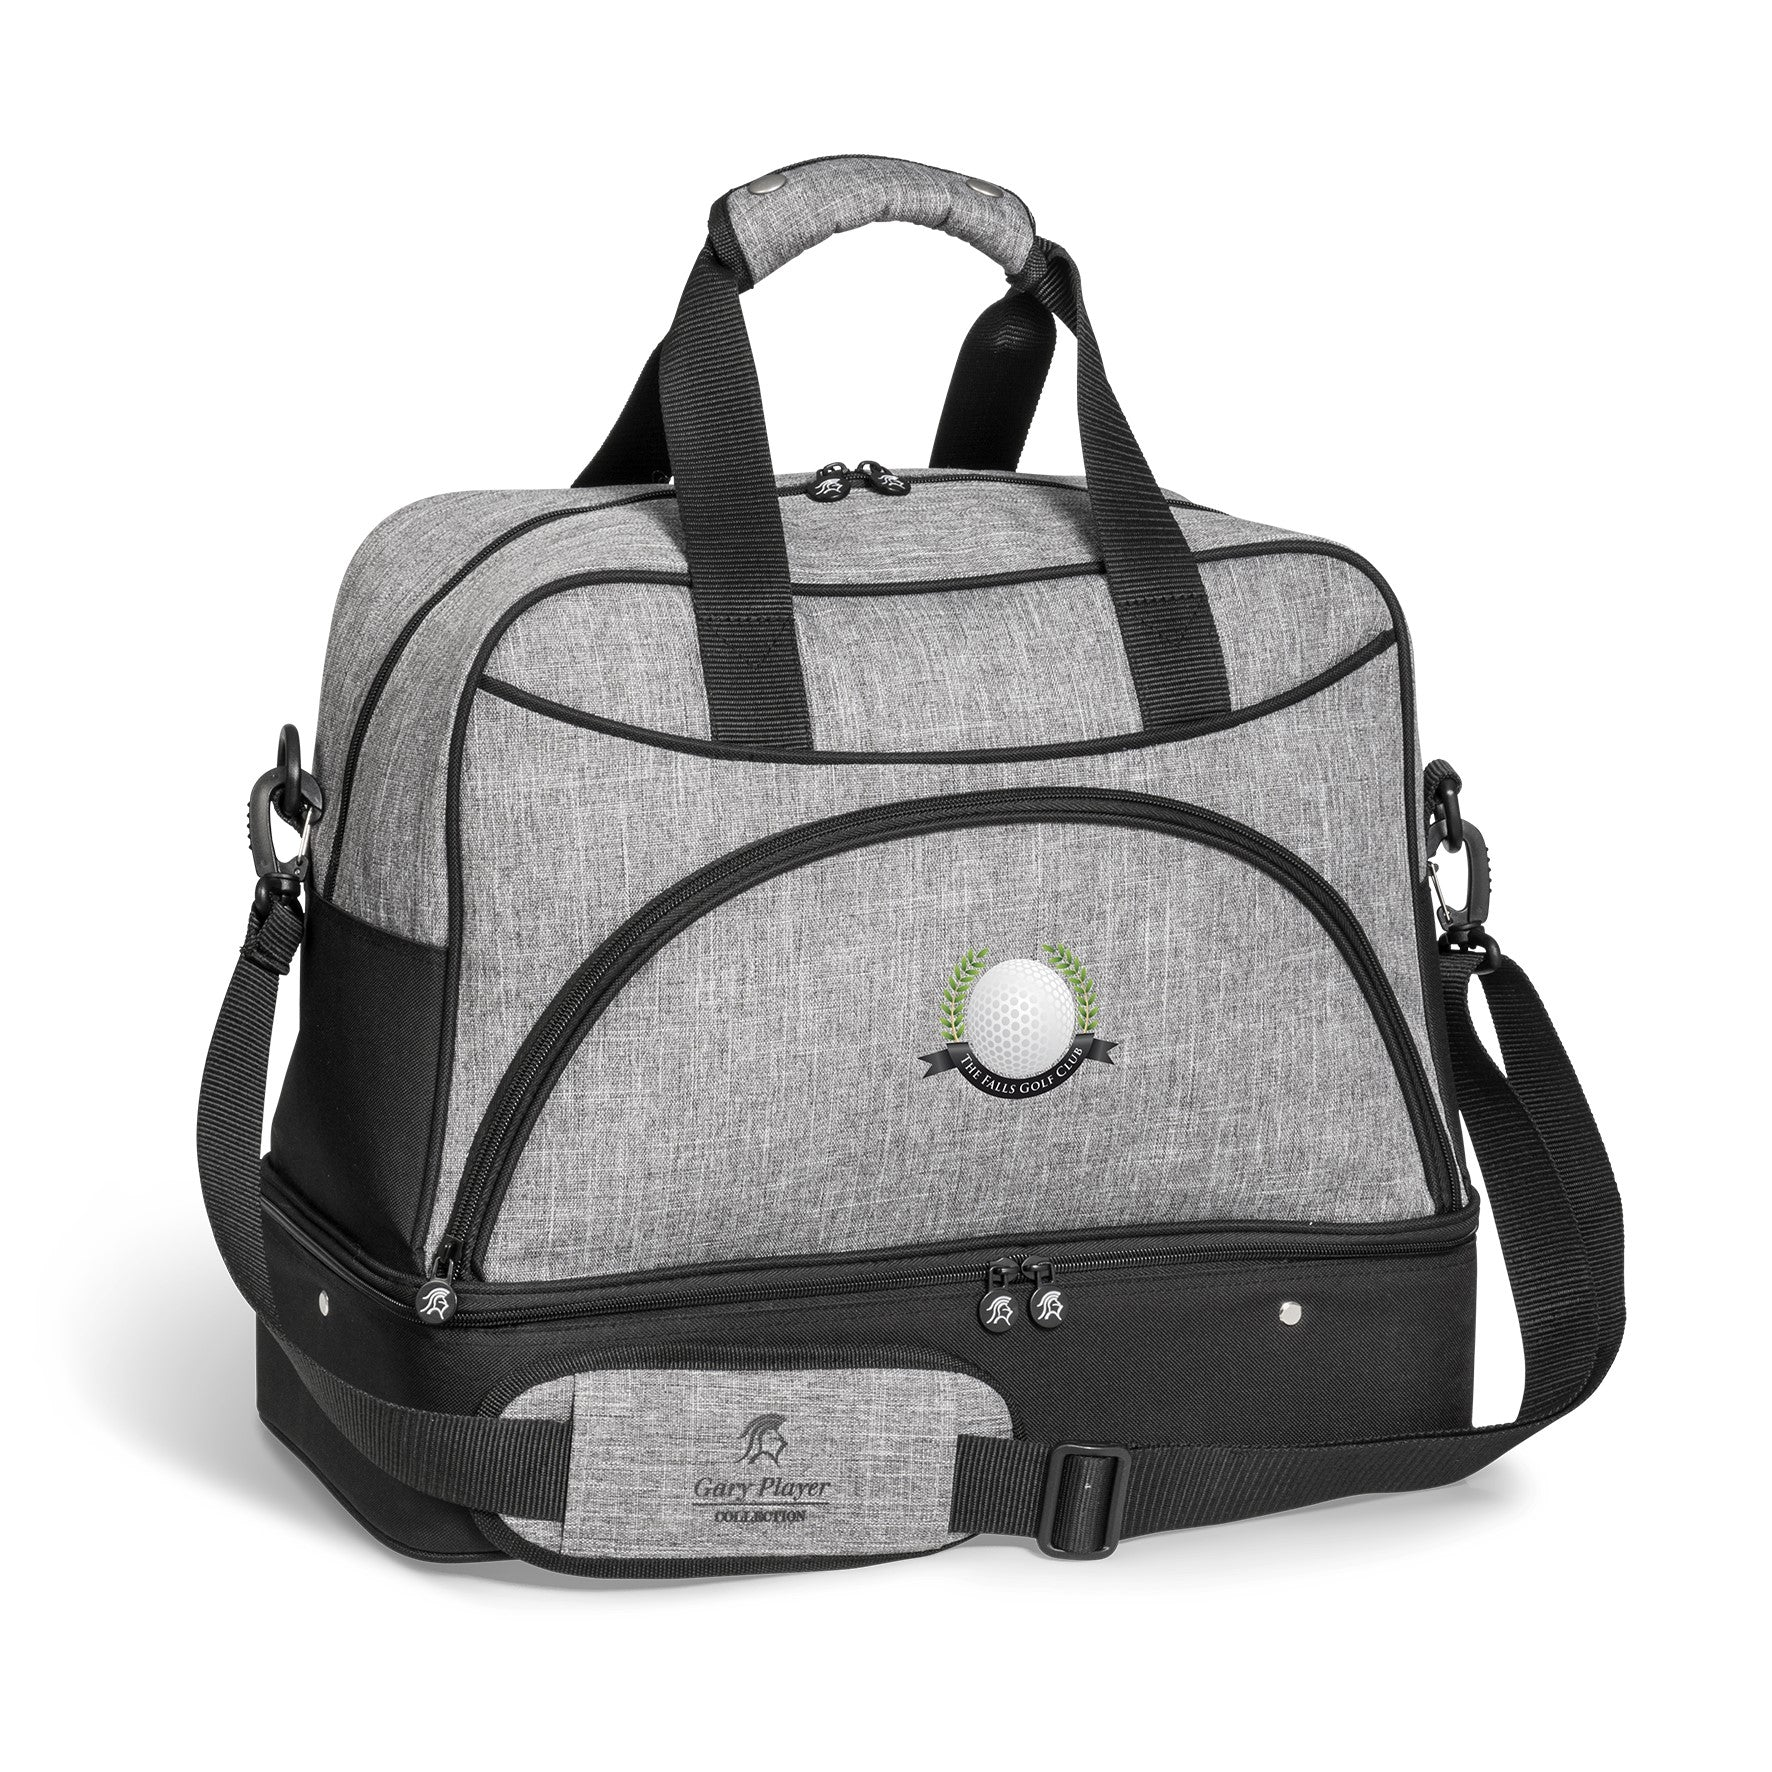 Gary Player Erinvale Double-Decker Bag